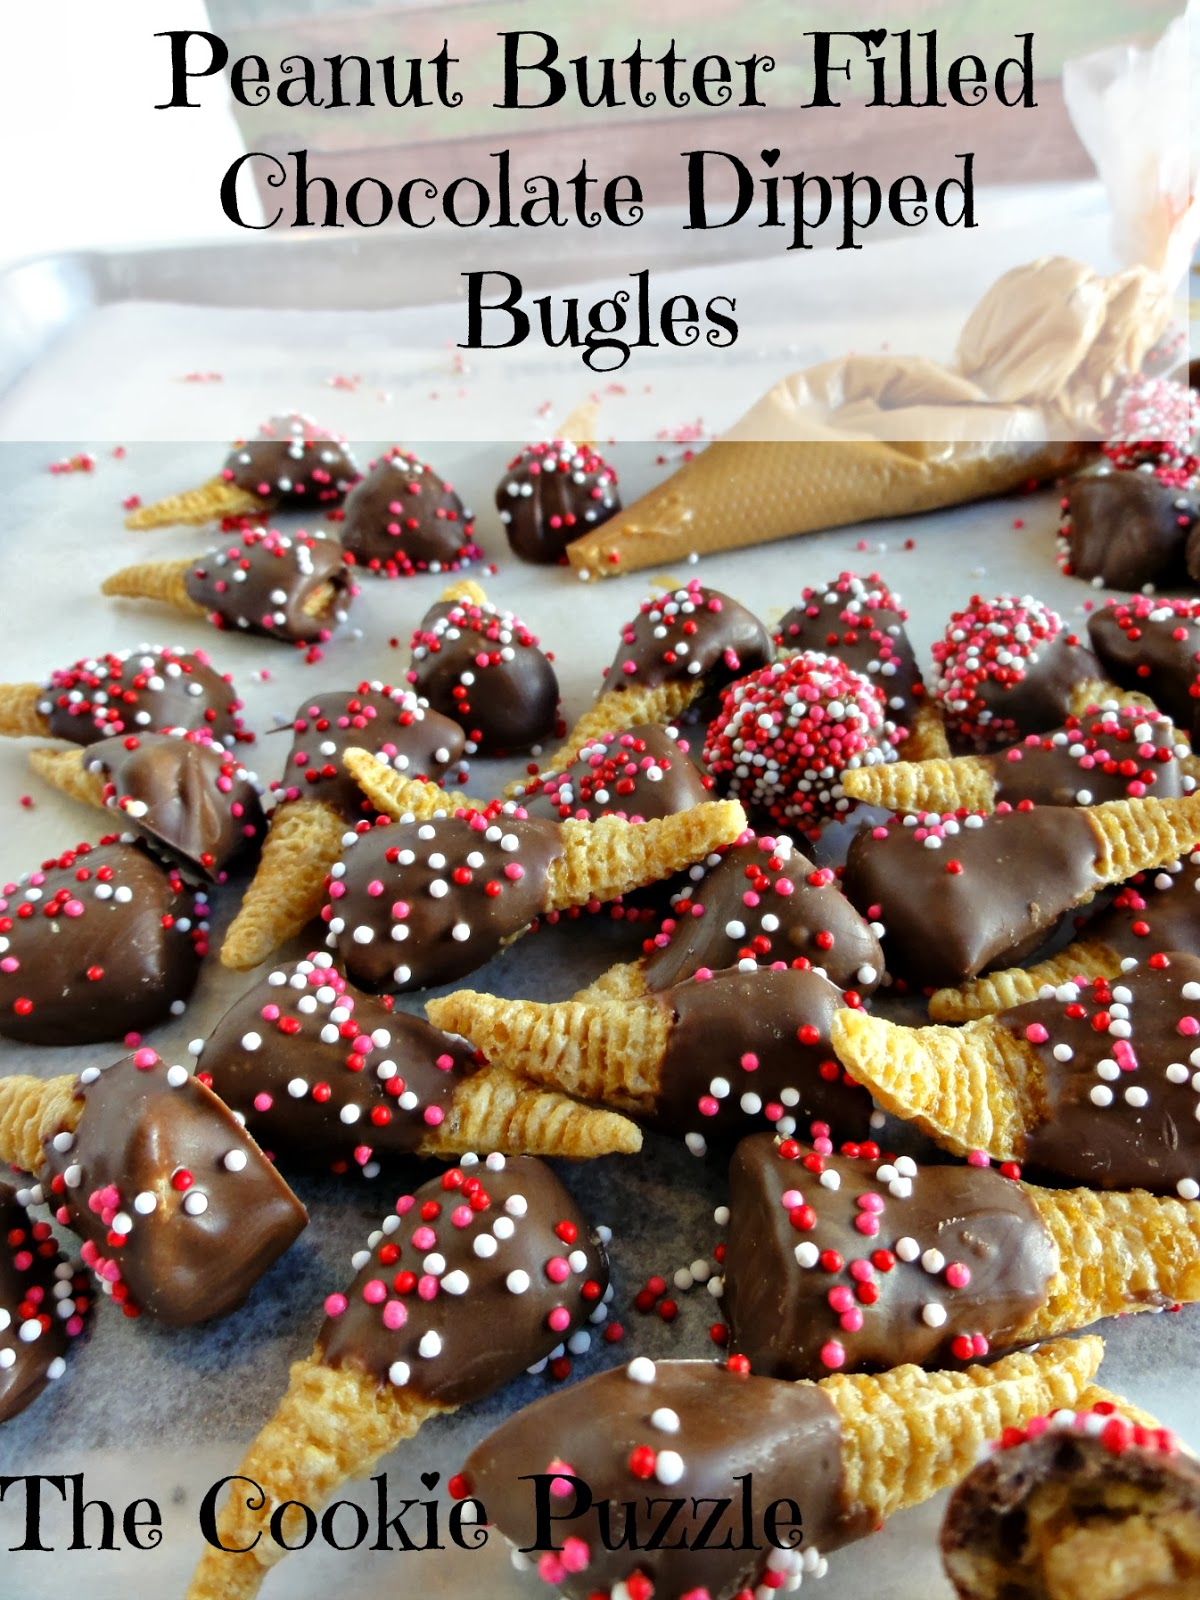 Peanut Butter Filled Chocolate Dipped Bugles